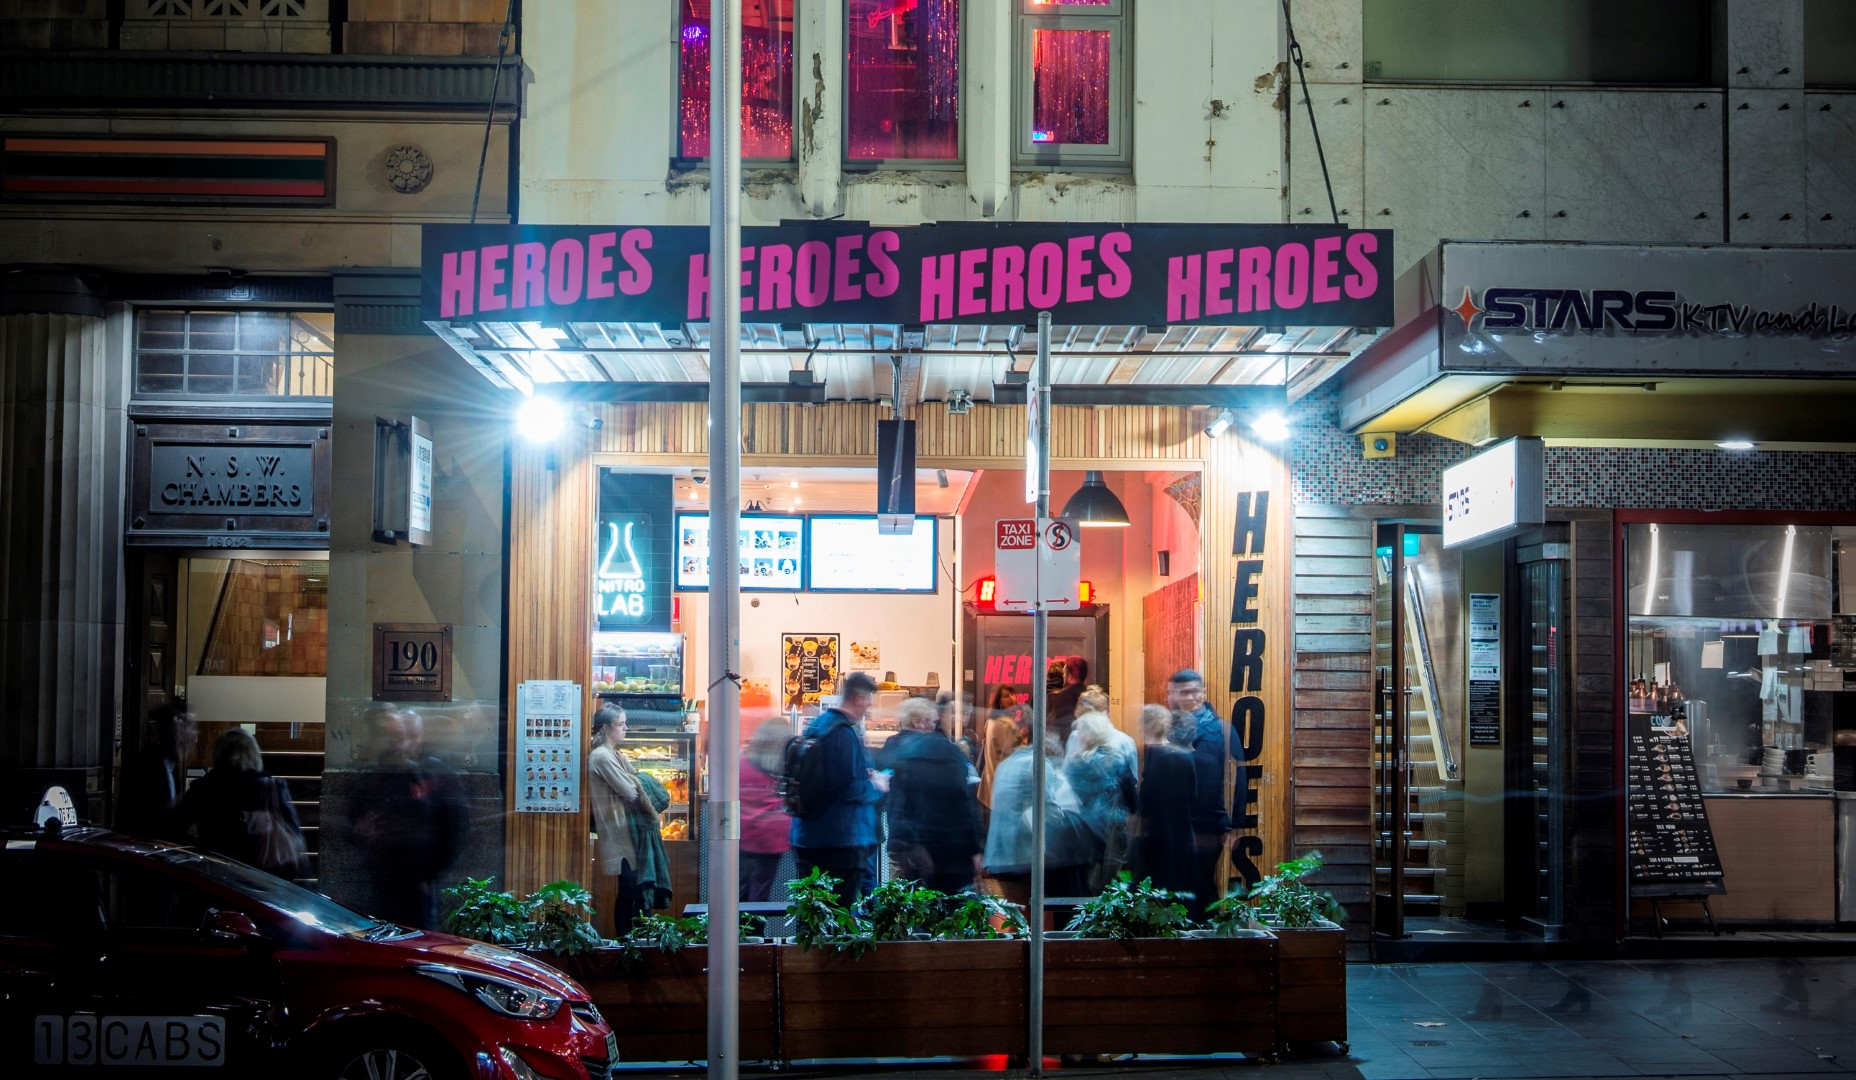 A crowded shopfront on a city street at night